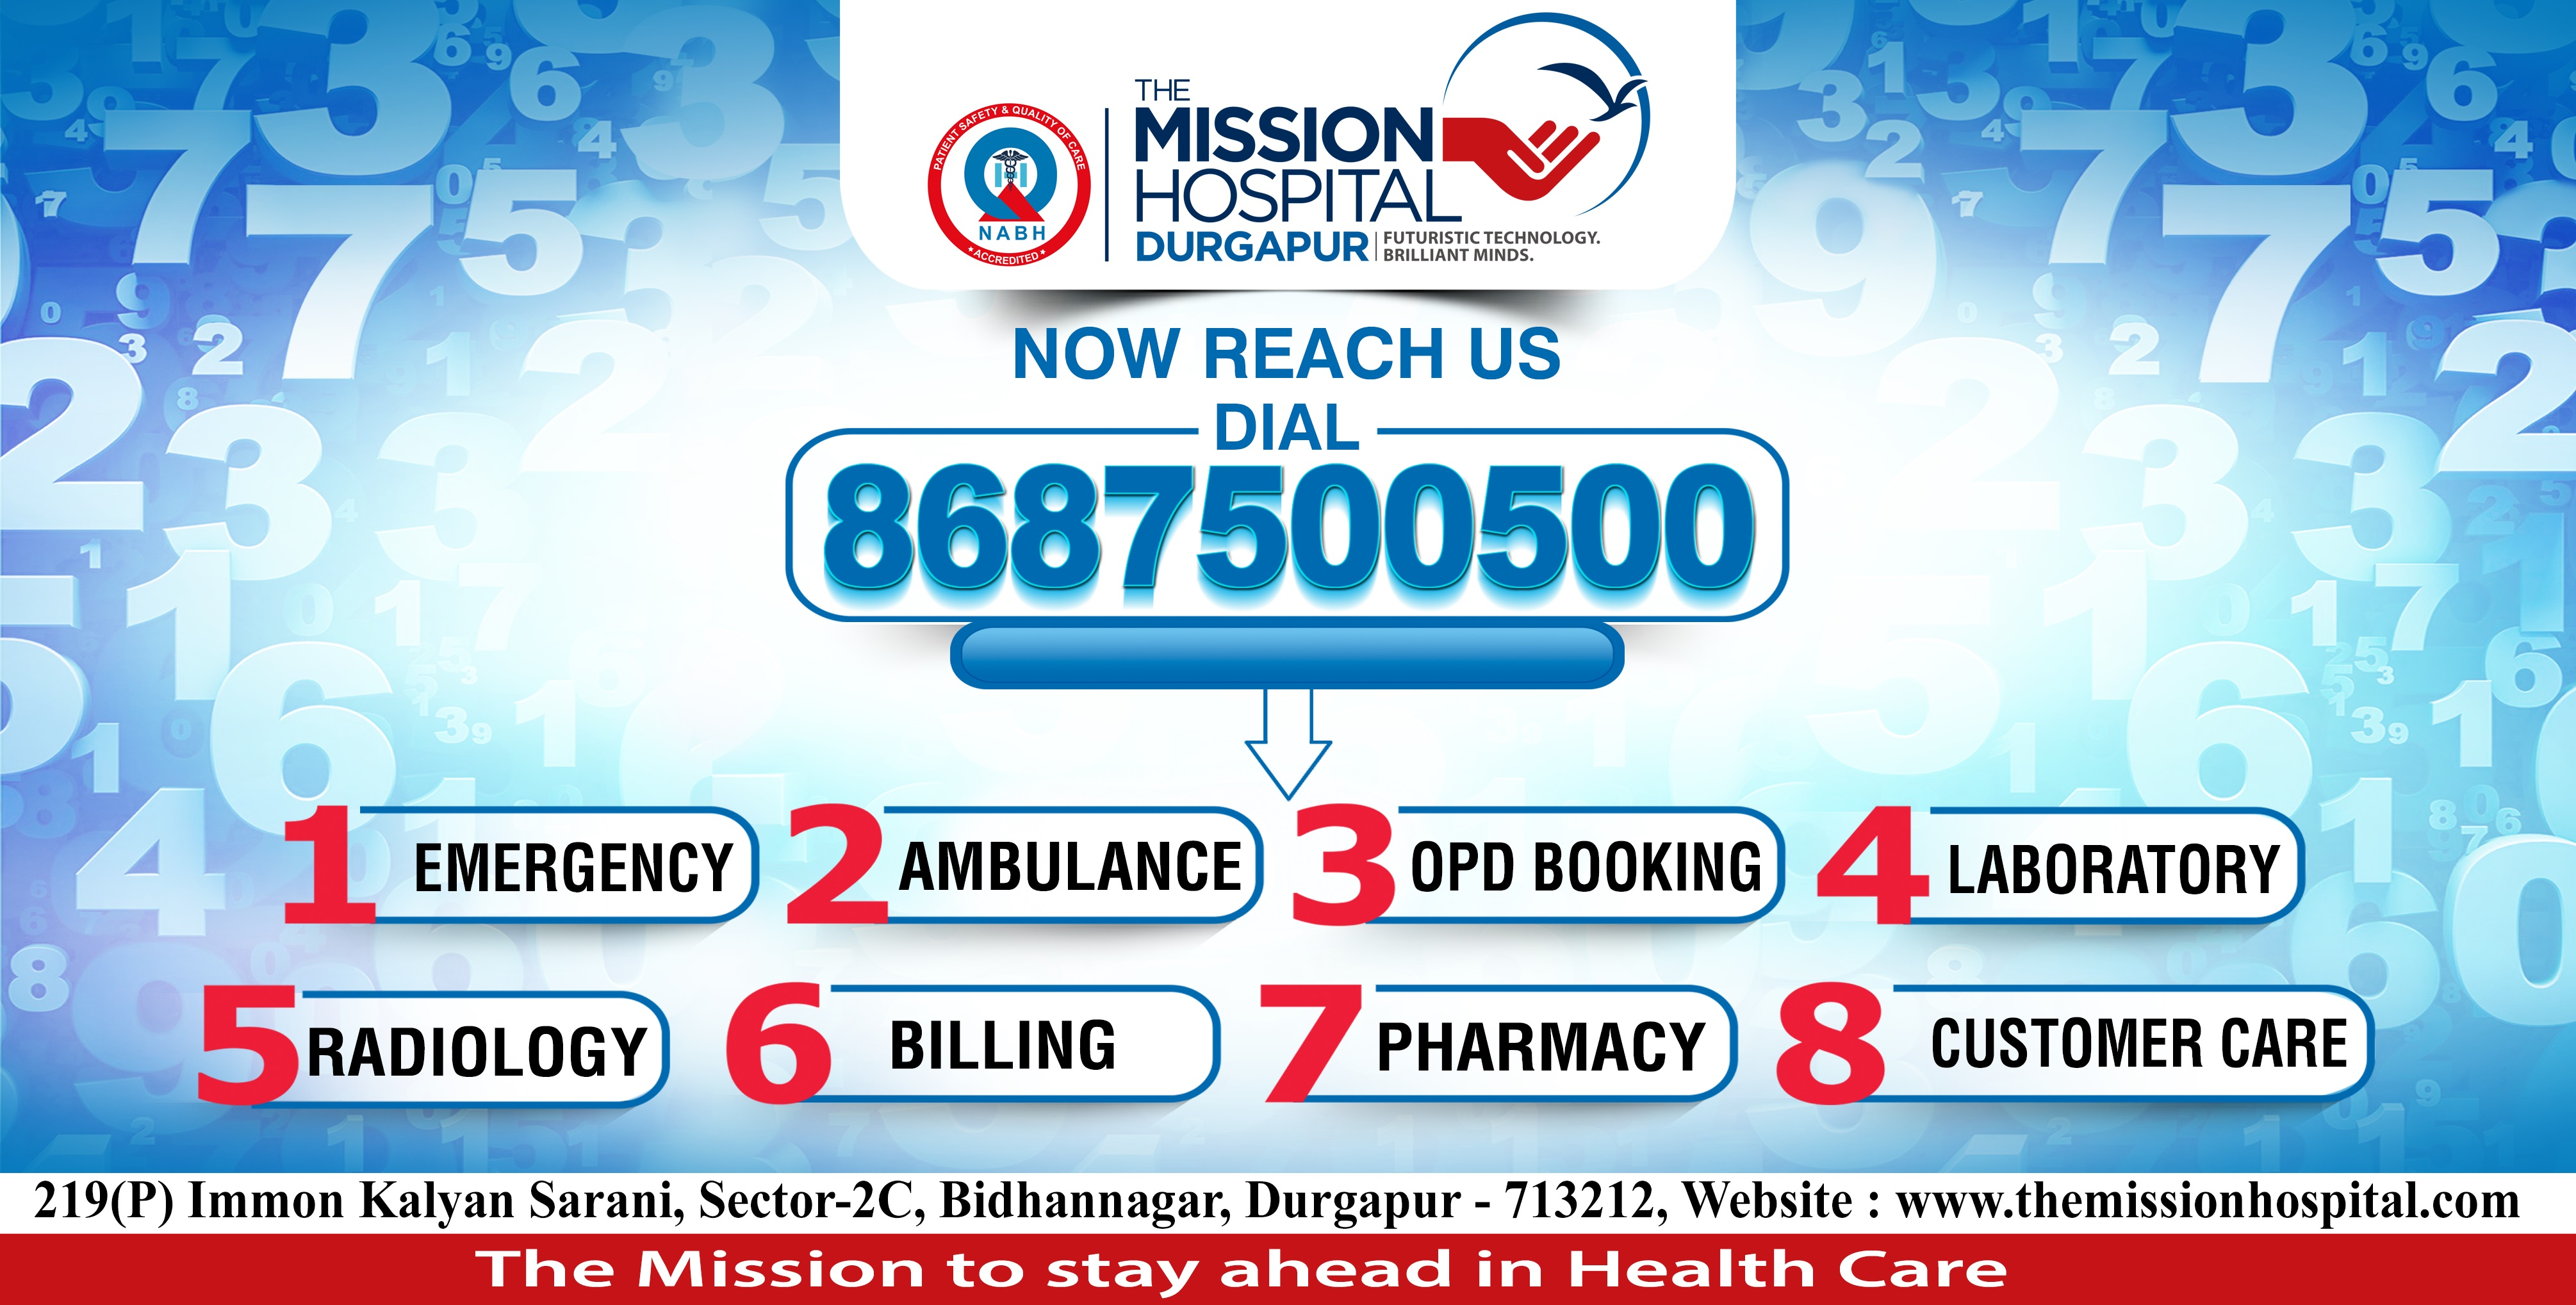 The Mission Hospital, Durgapur is the Best Hospital in